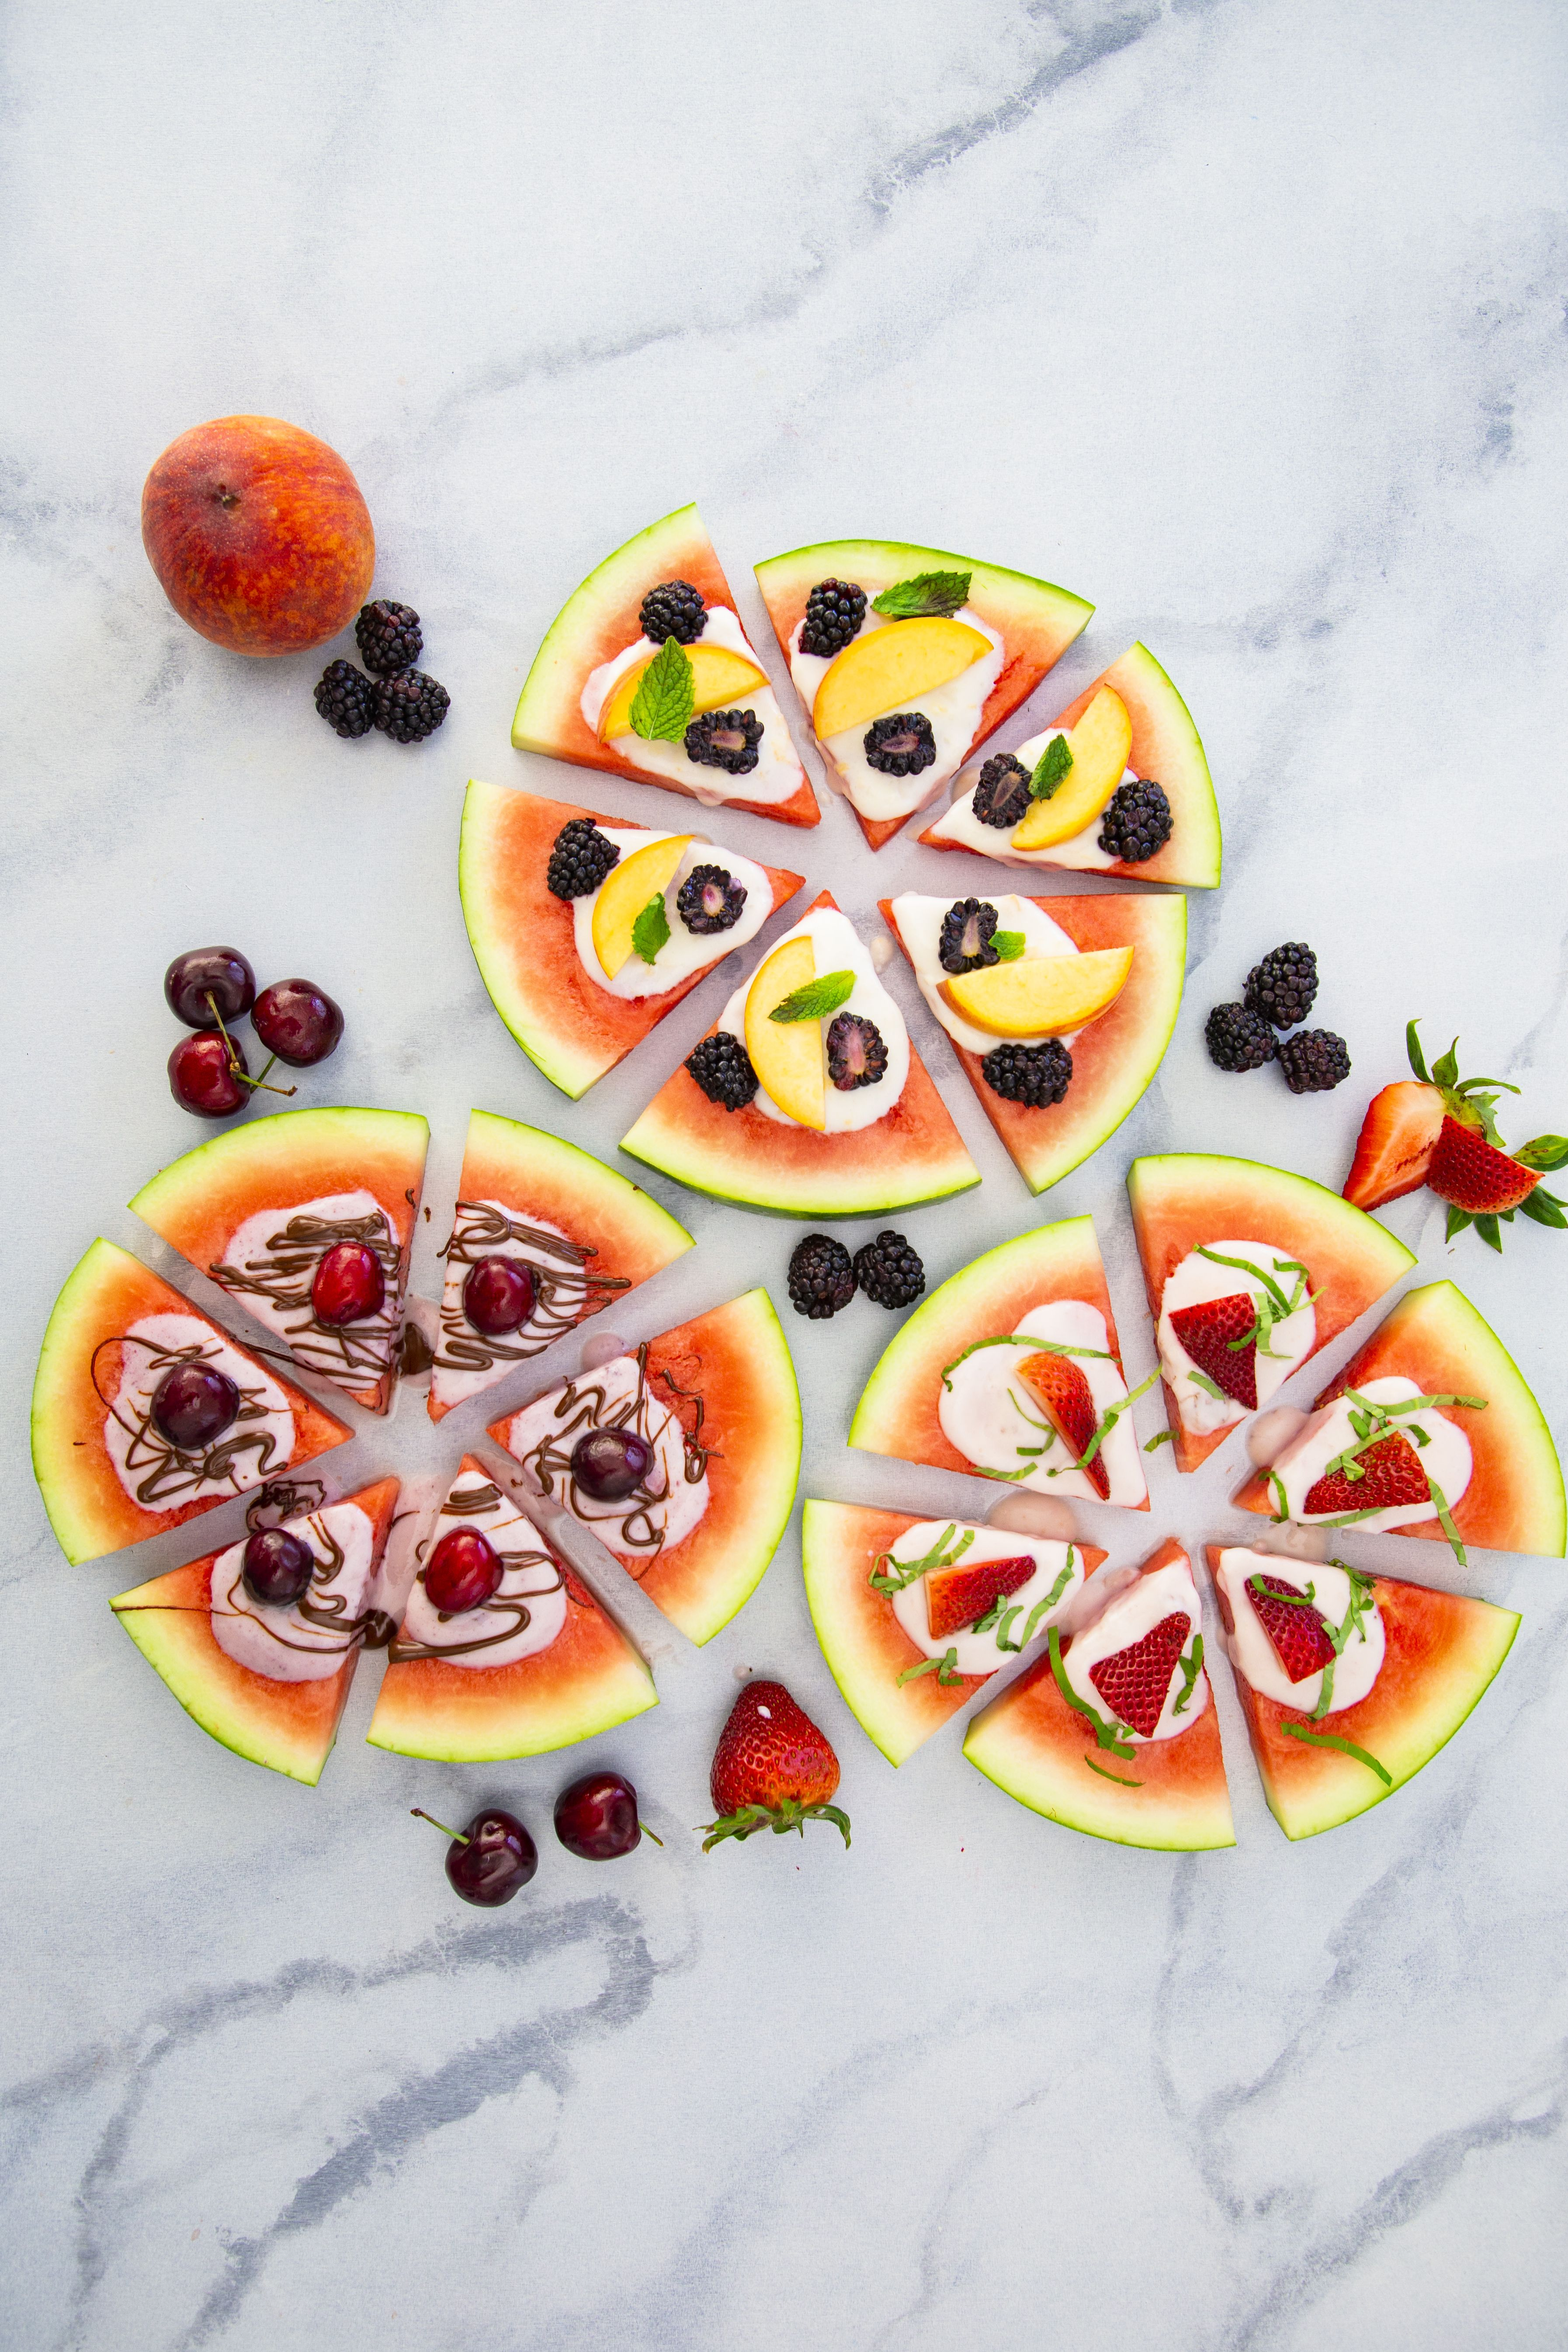 Watermelon Pizza with Yogurt and Fruit